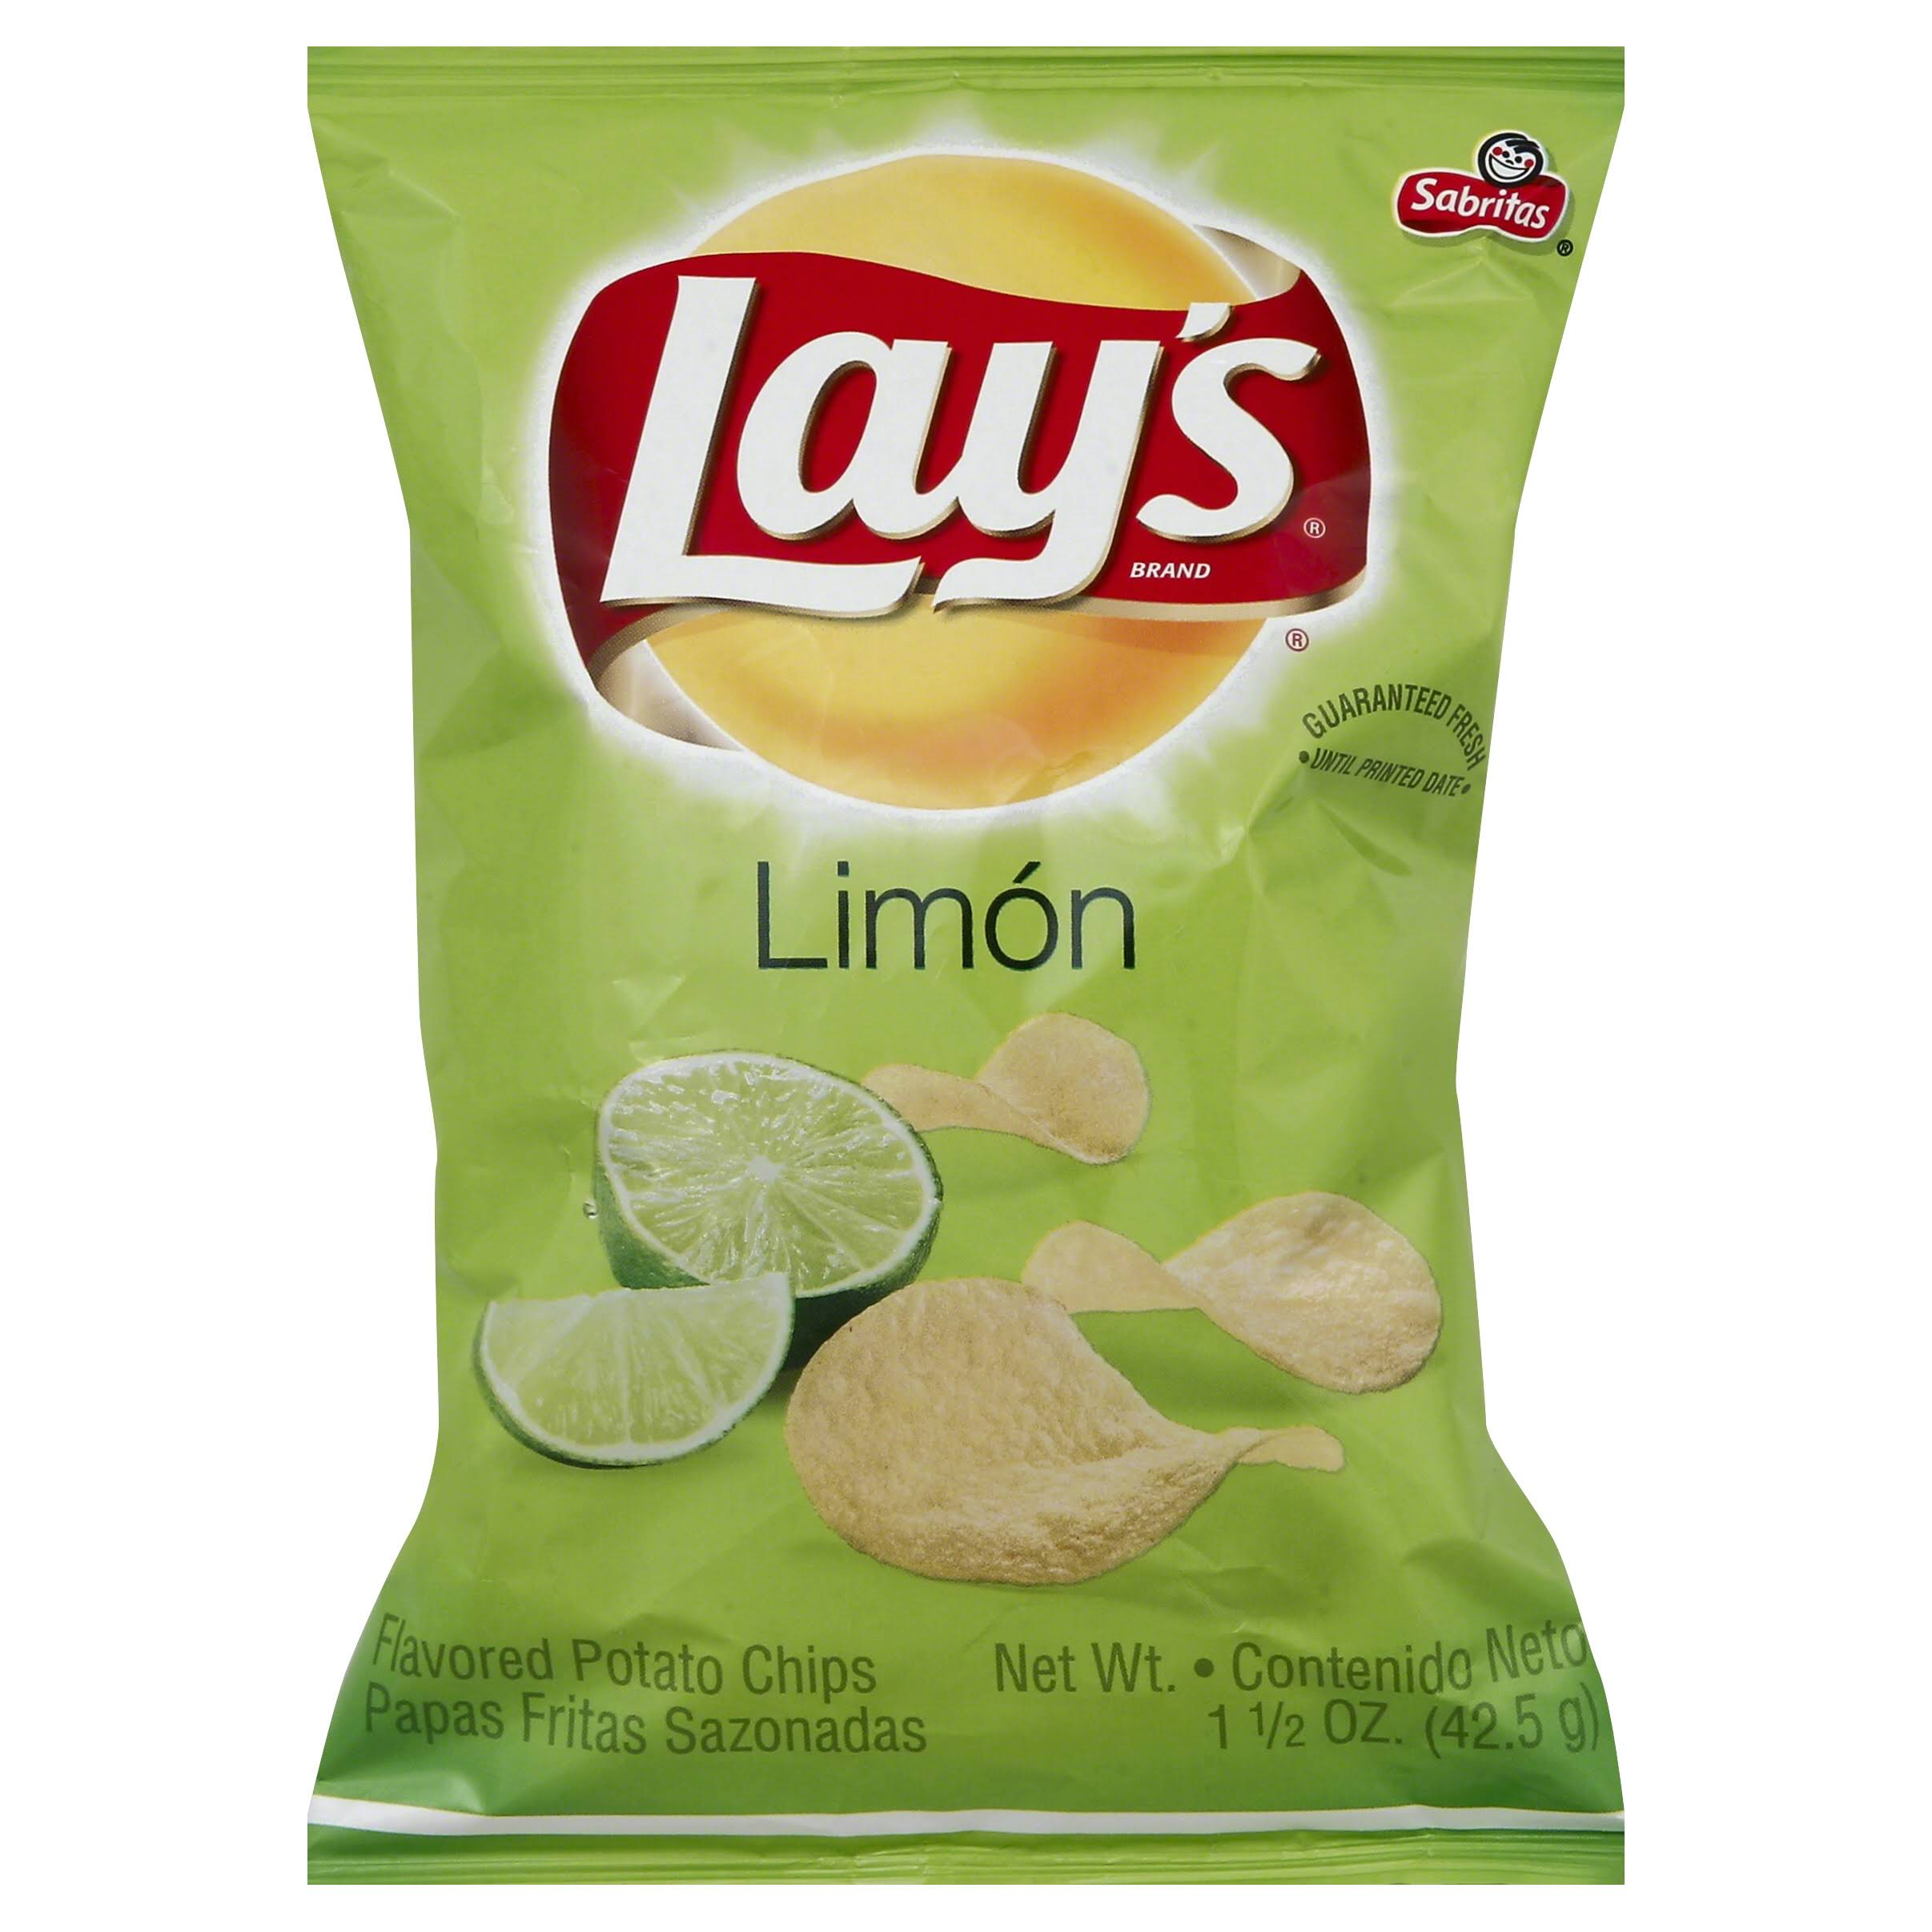 Lays Potato Chips, Flavored, Limon - 1.5 oz